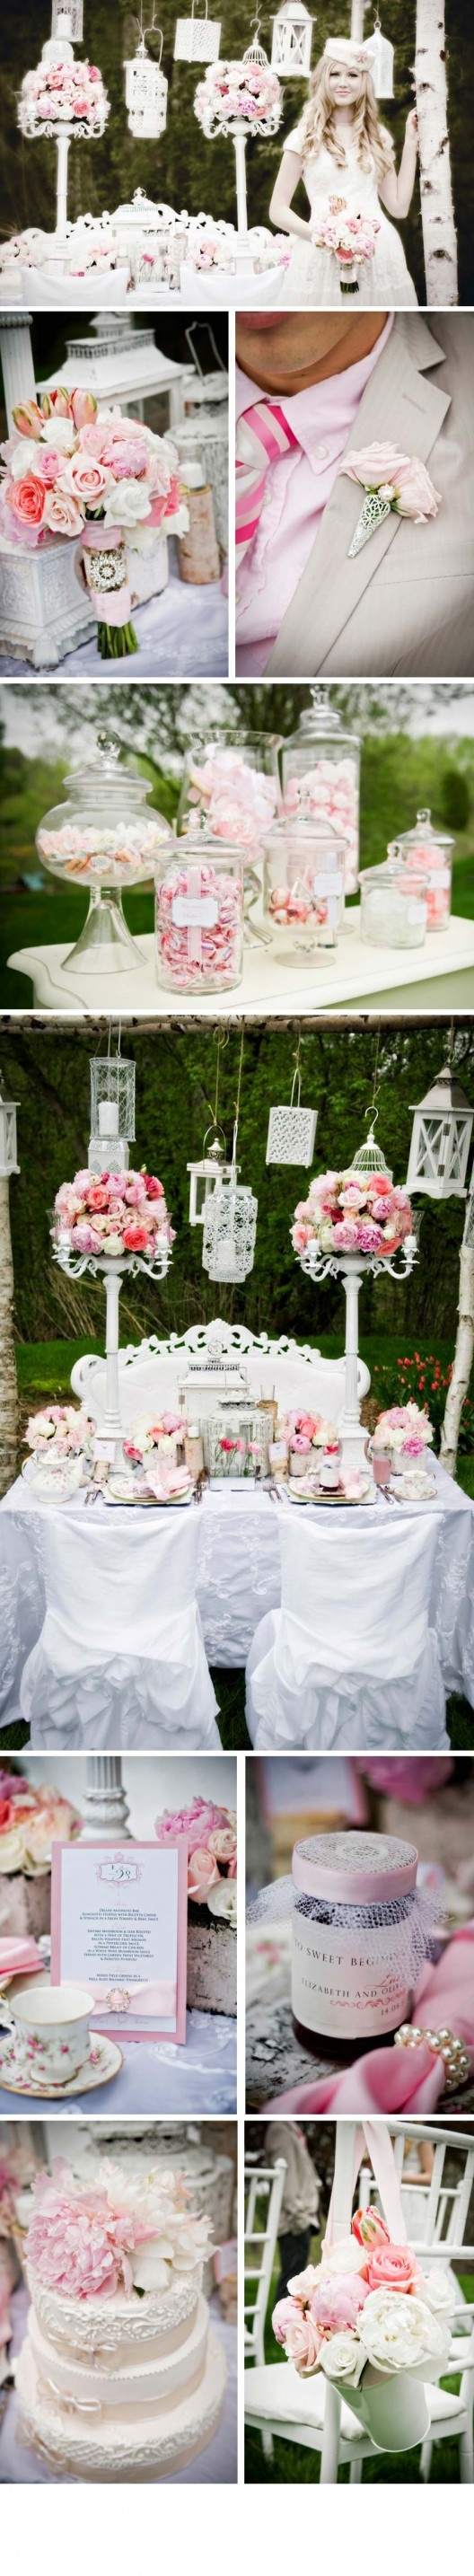 ideas for rustic wedding reception%0A Some ideas here for reception or showers    Wedding VintageVintage